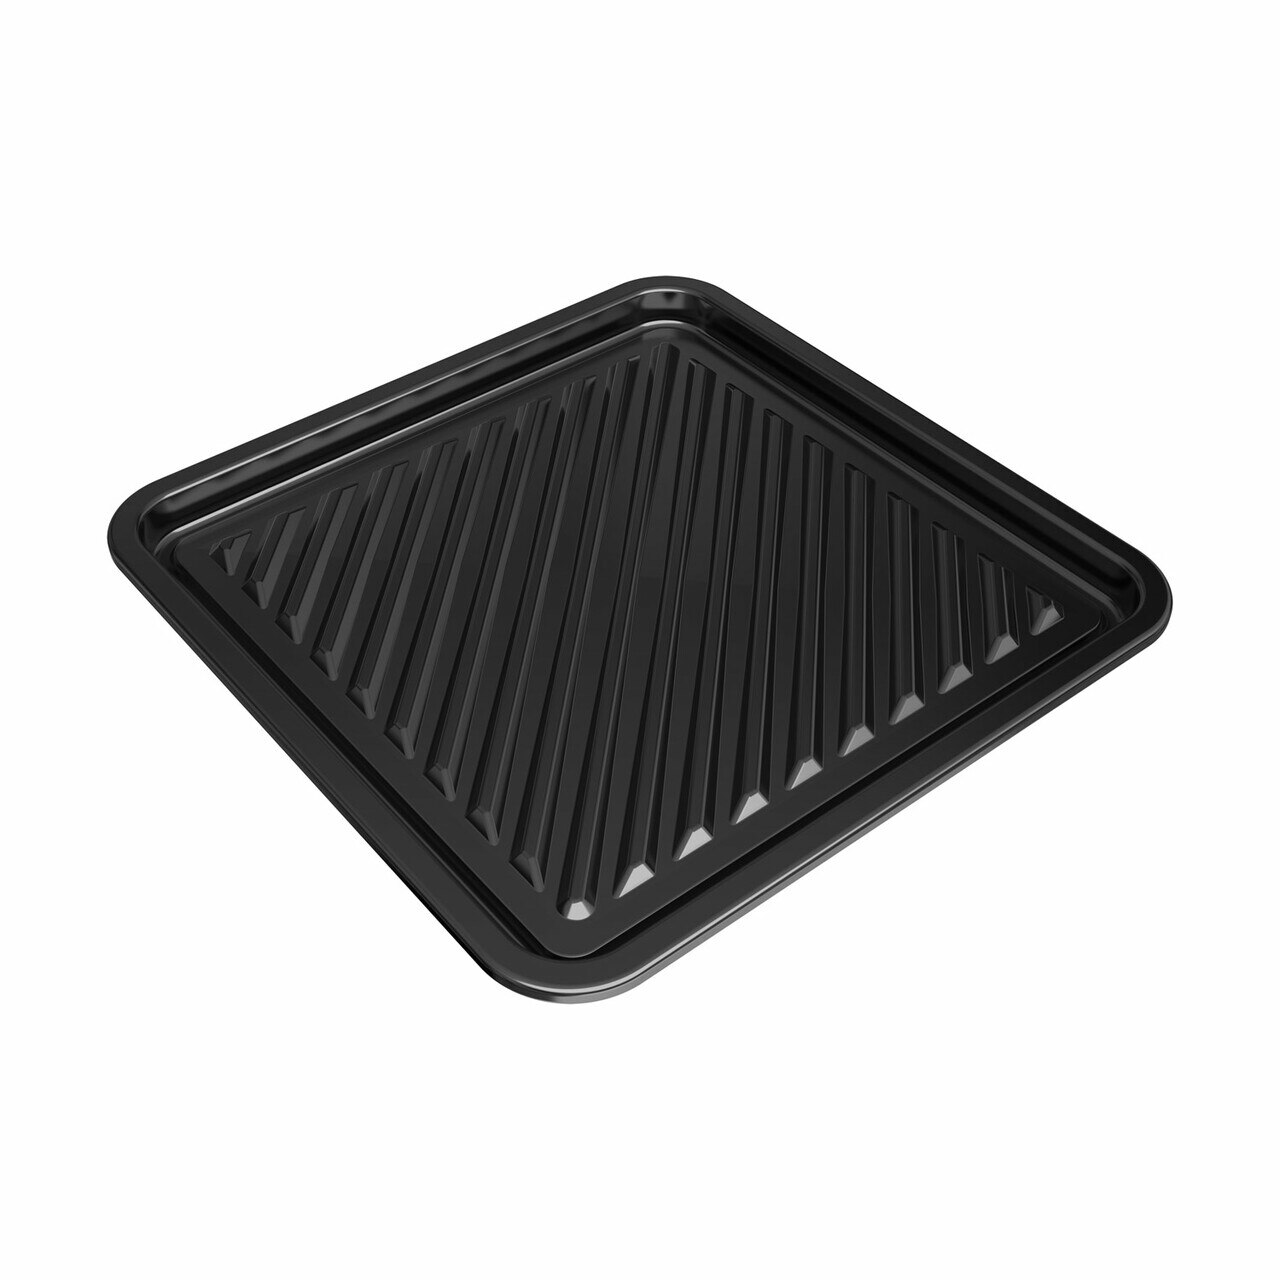 Sharp Superheated Steam Countertop Oven (SSC0586DS) – Broiling Pan